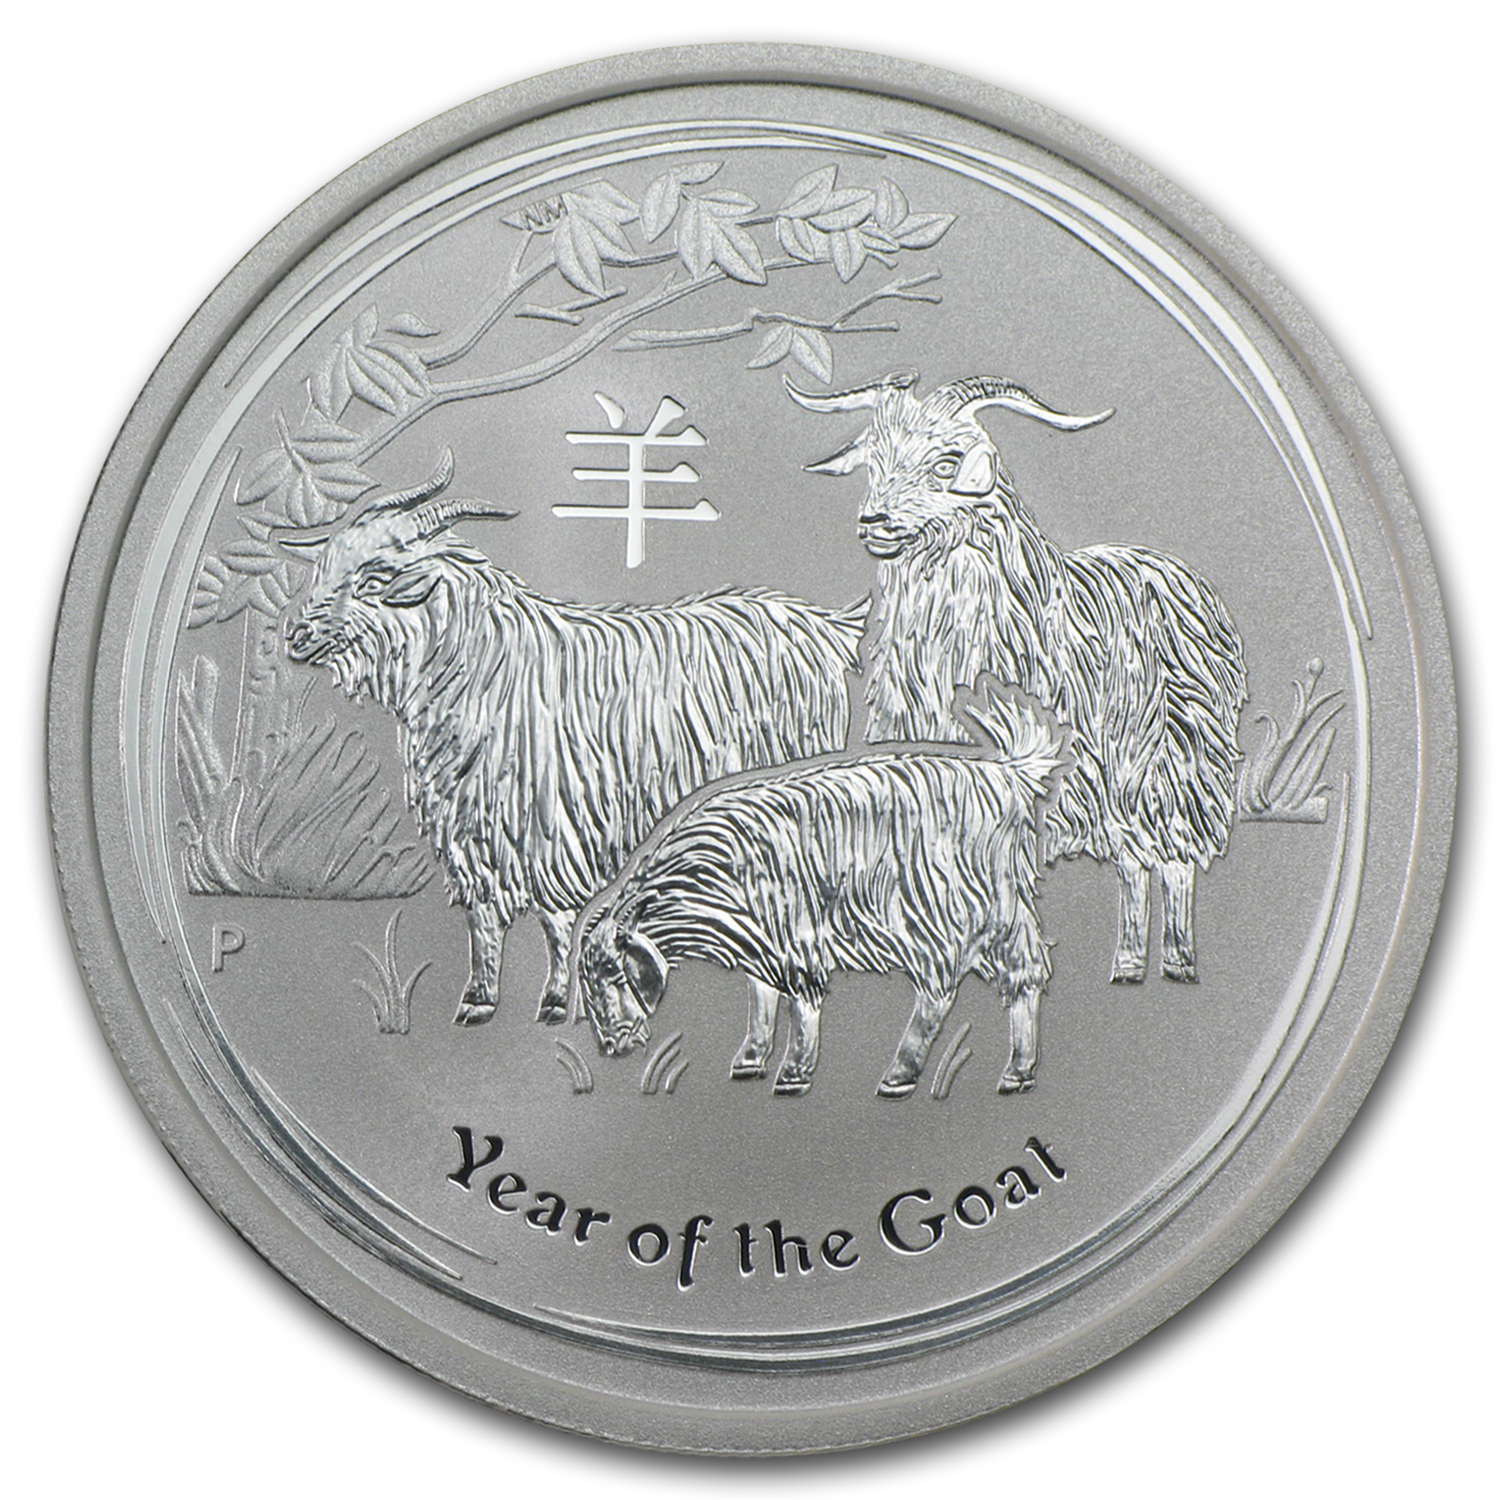 2015 1/2 oz Silver Australian Year of the Goat BU